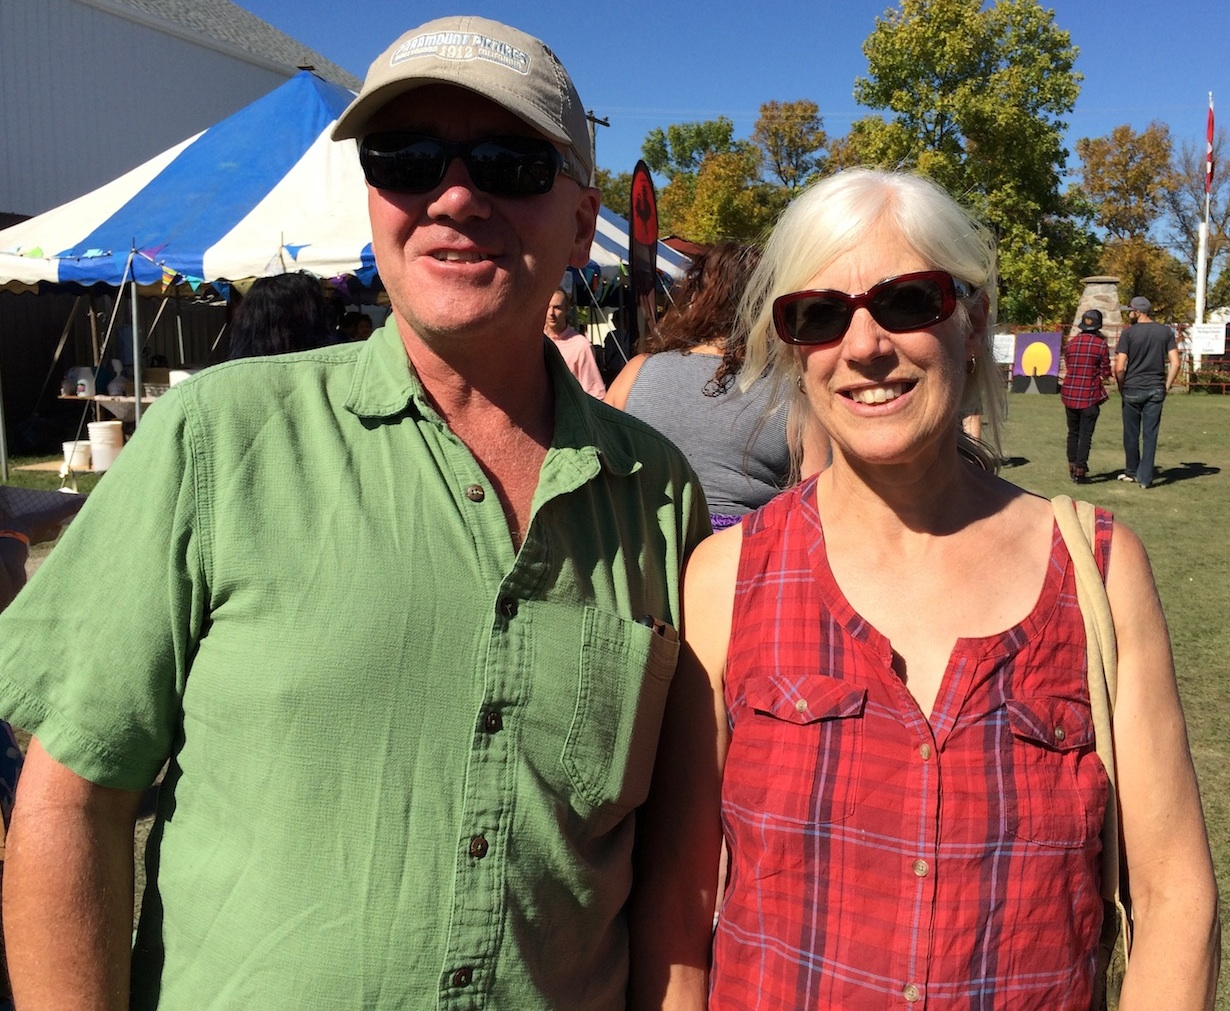 Wendy Beulow and David Lewis attended some of the workshops at Harvest Moon Festival 2016. /NOAH ERENBERG